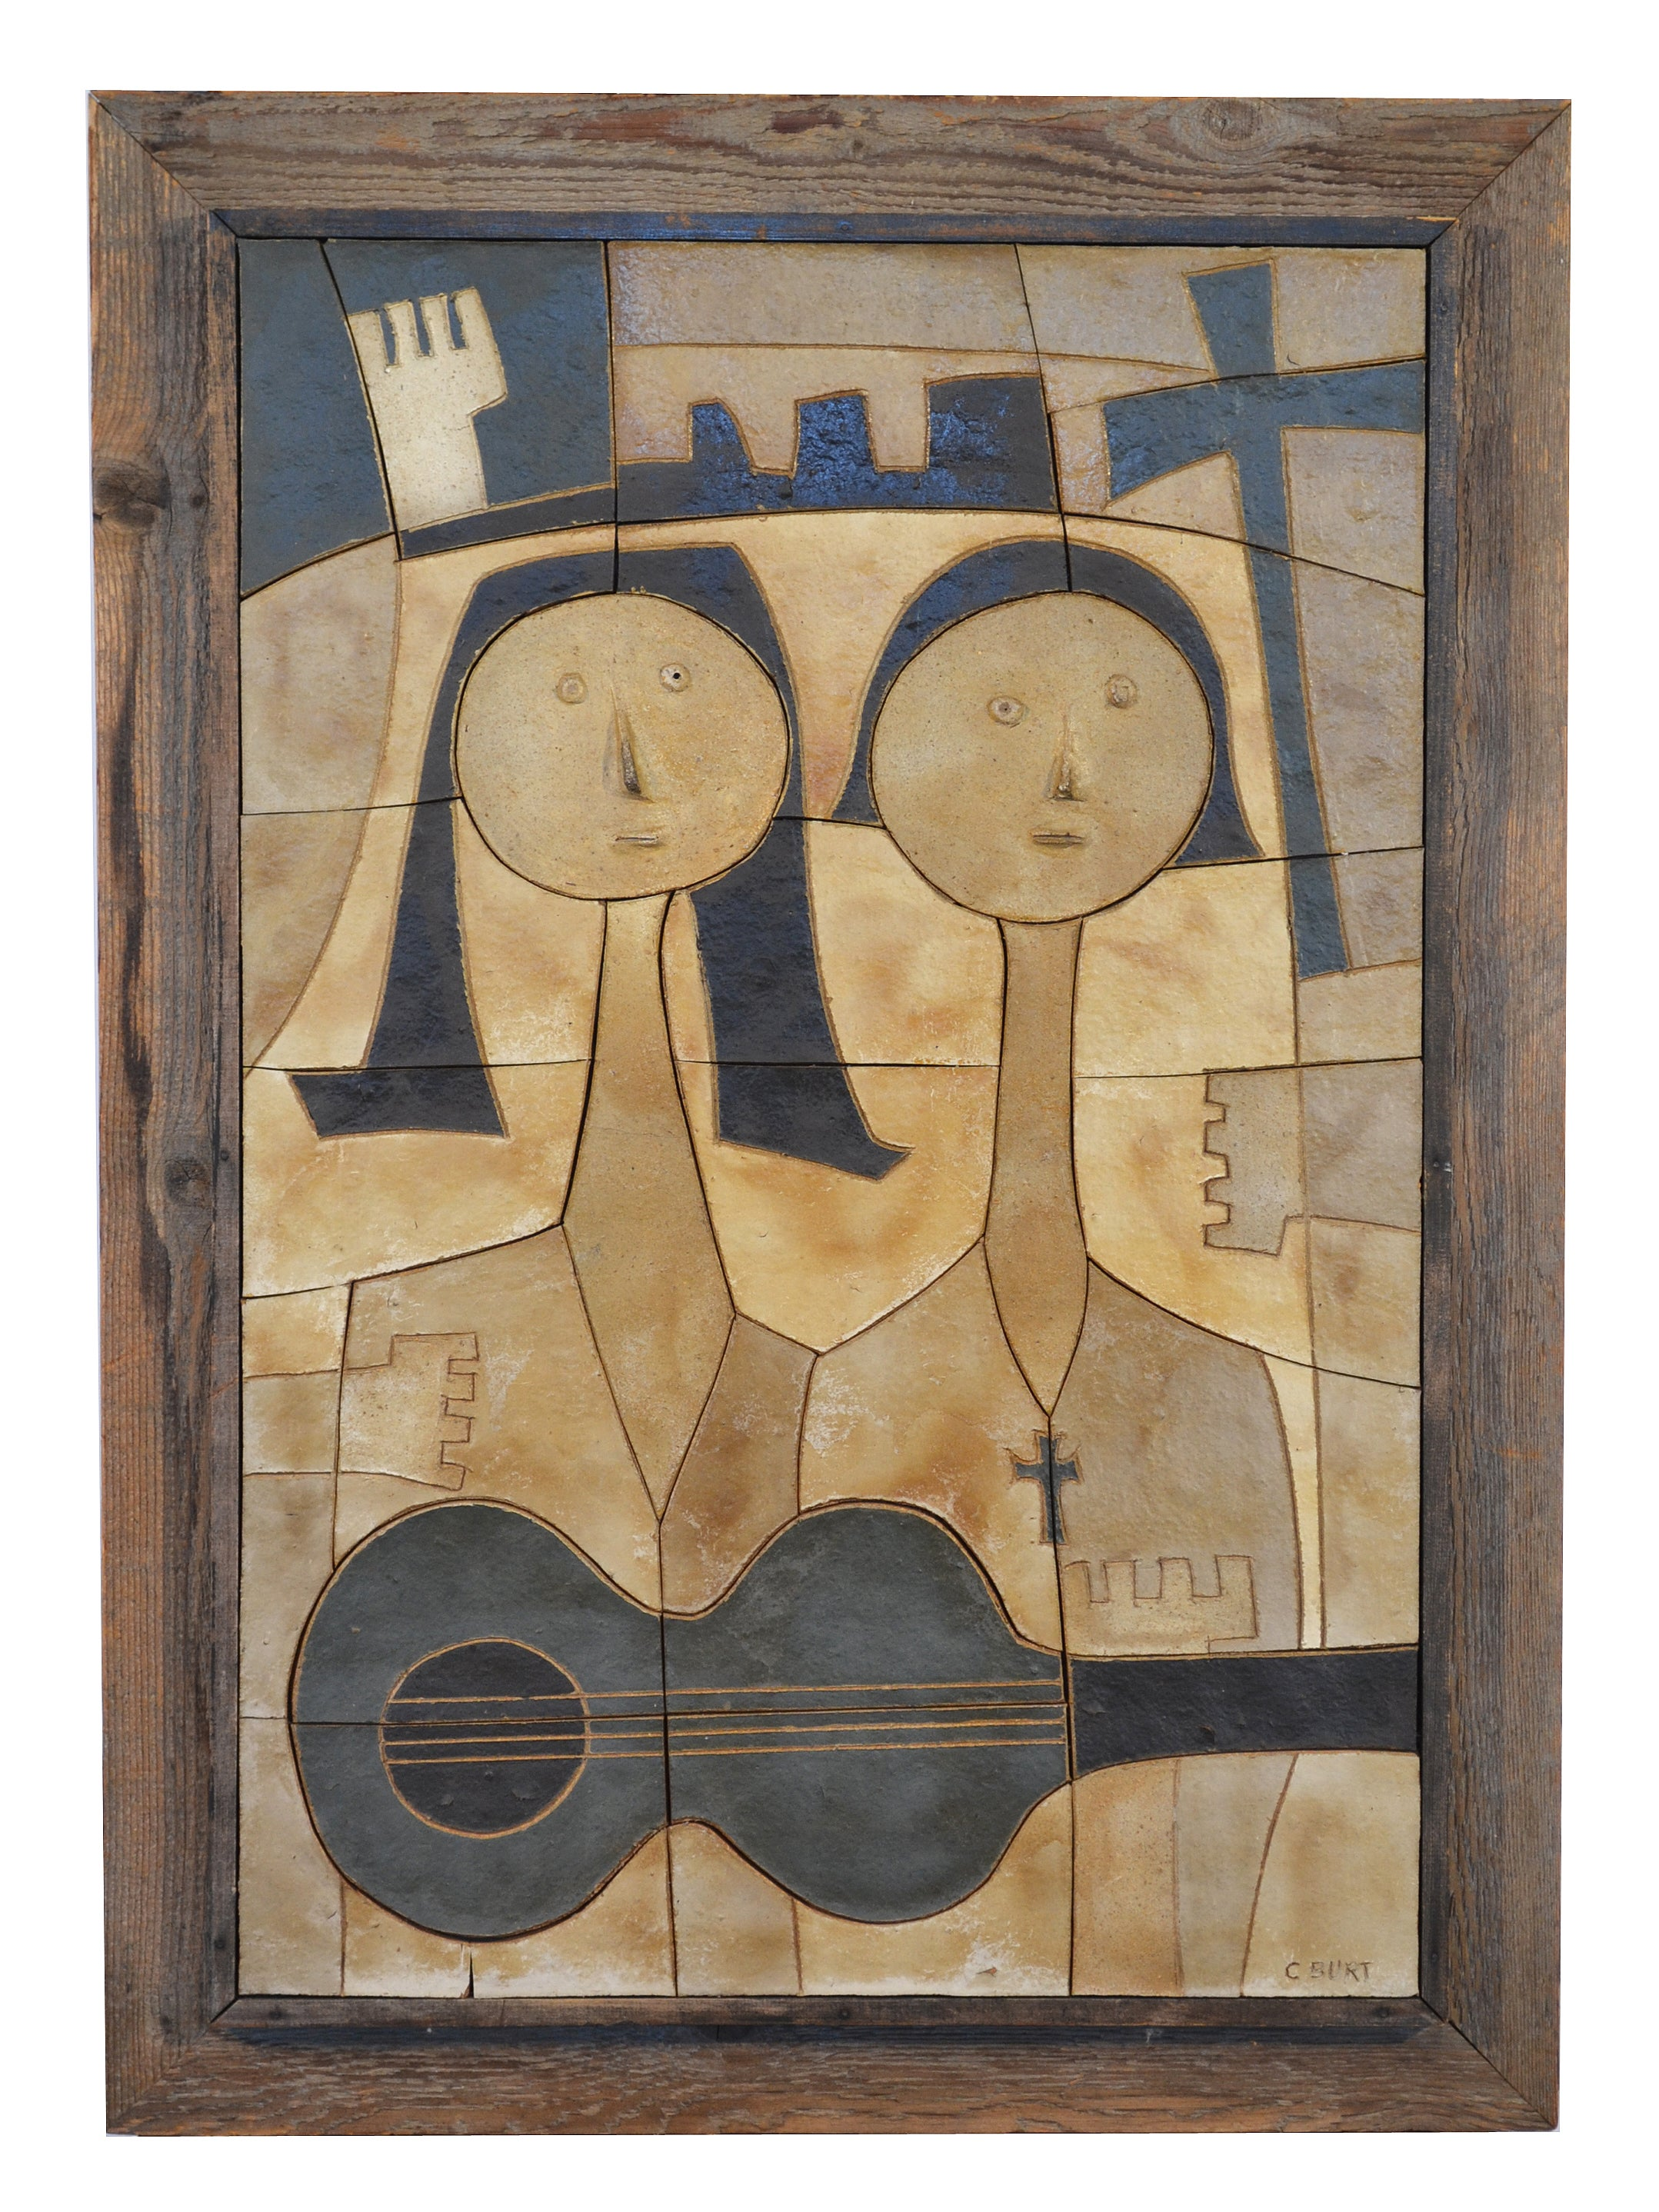 Ceramic Wall Relief by Clyde Burt